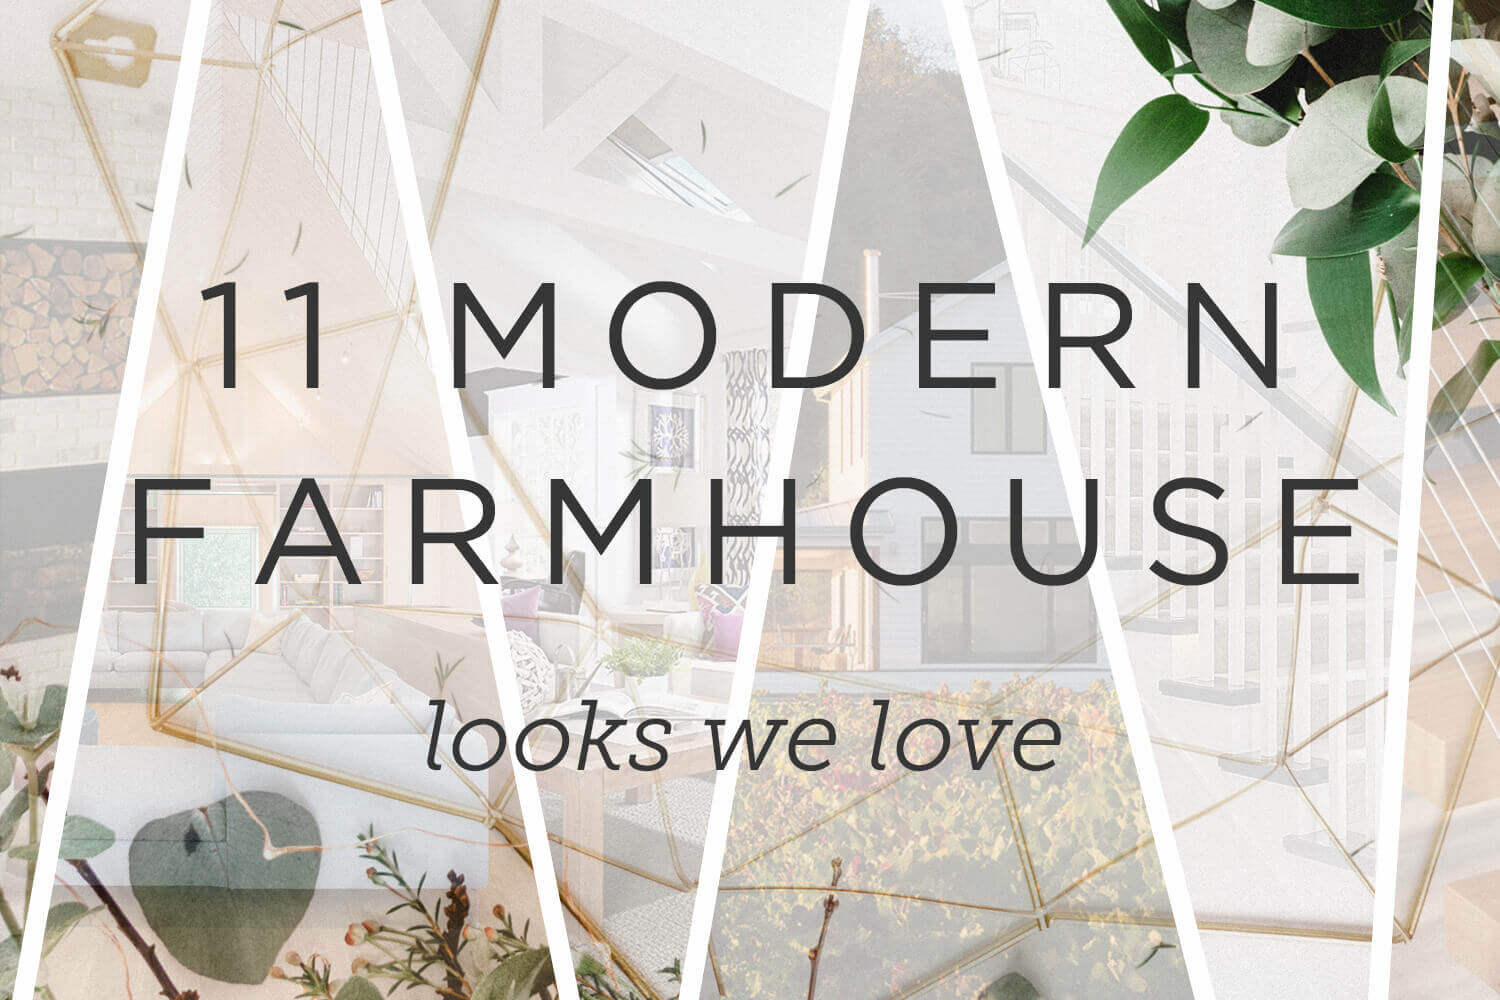 Modern farmhouse looks we love photo